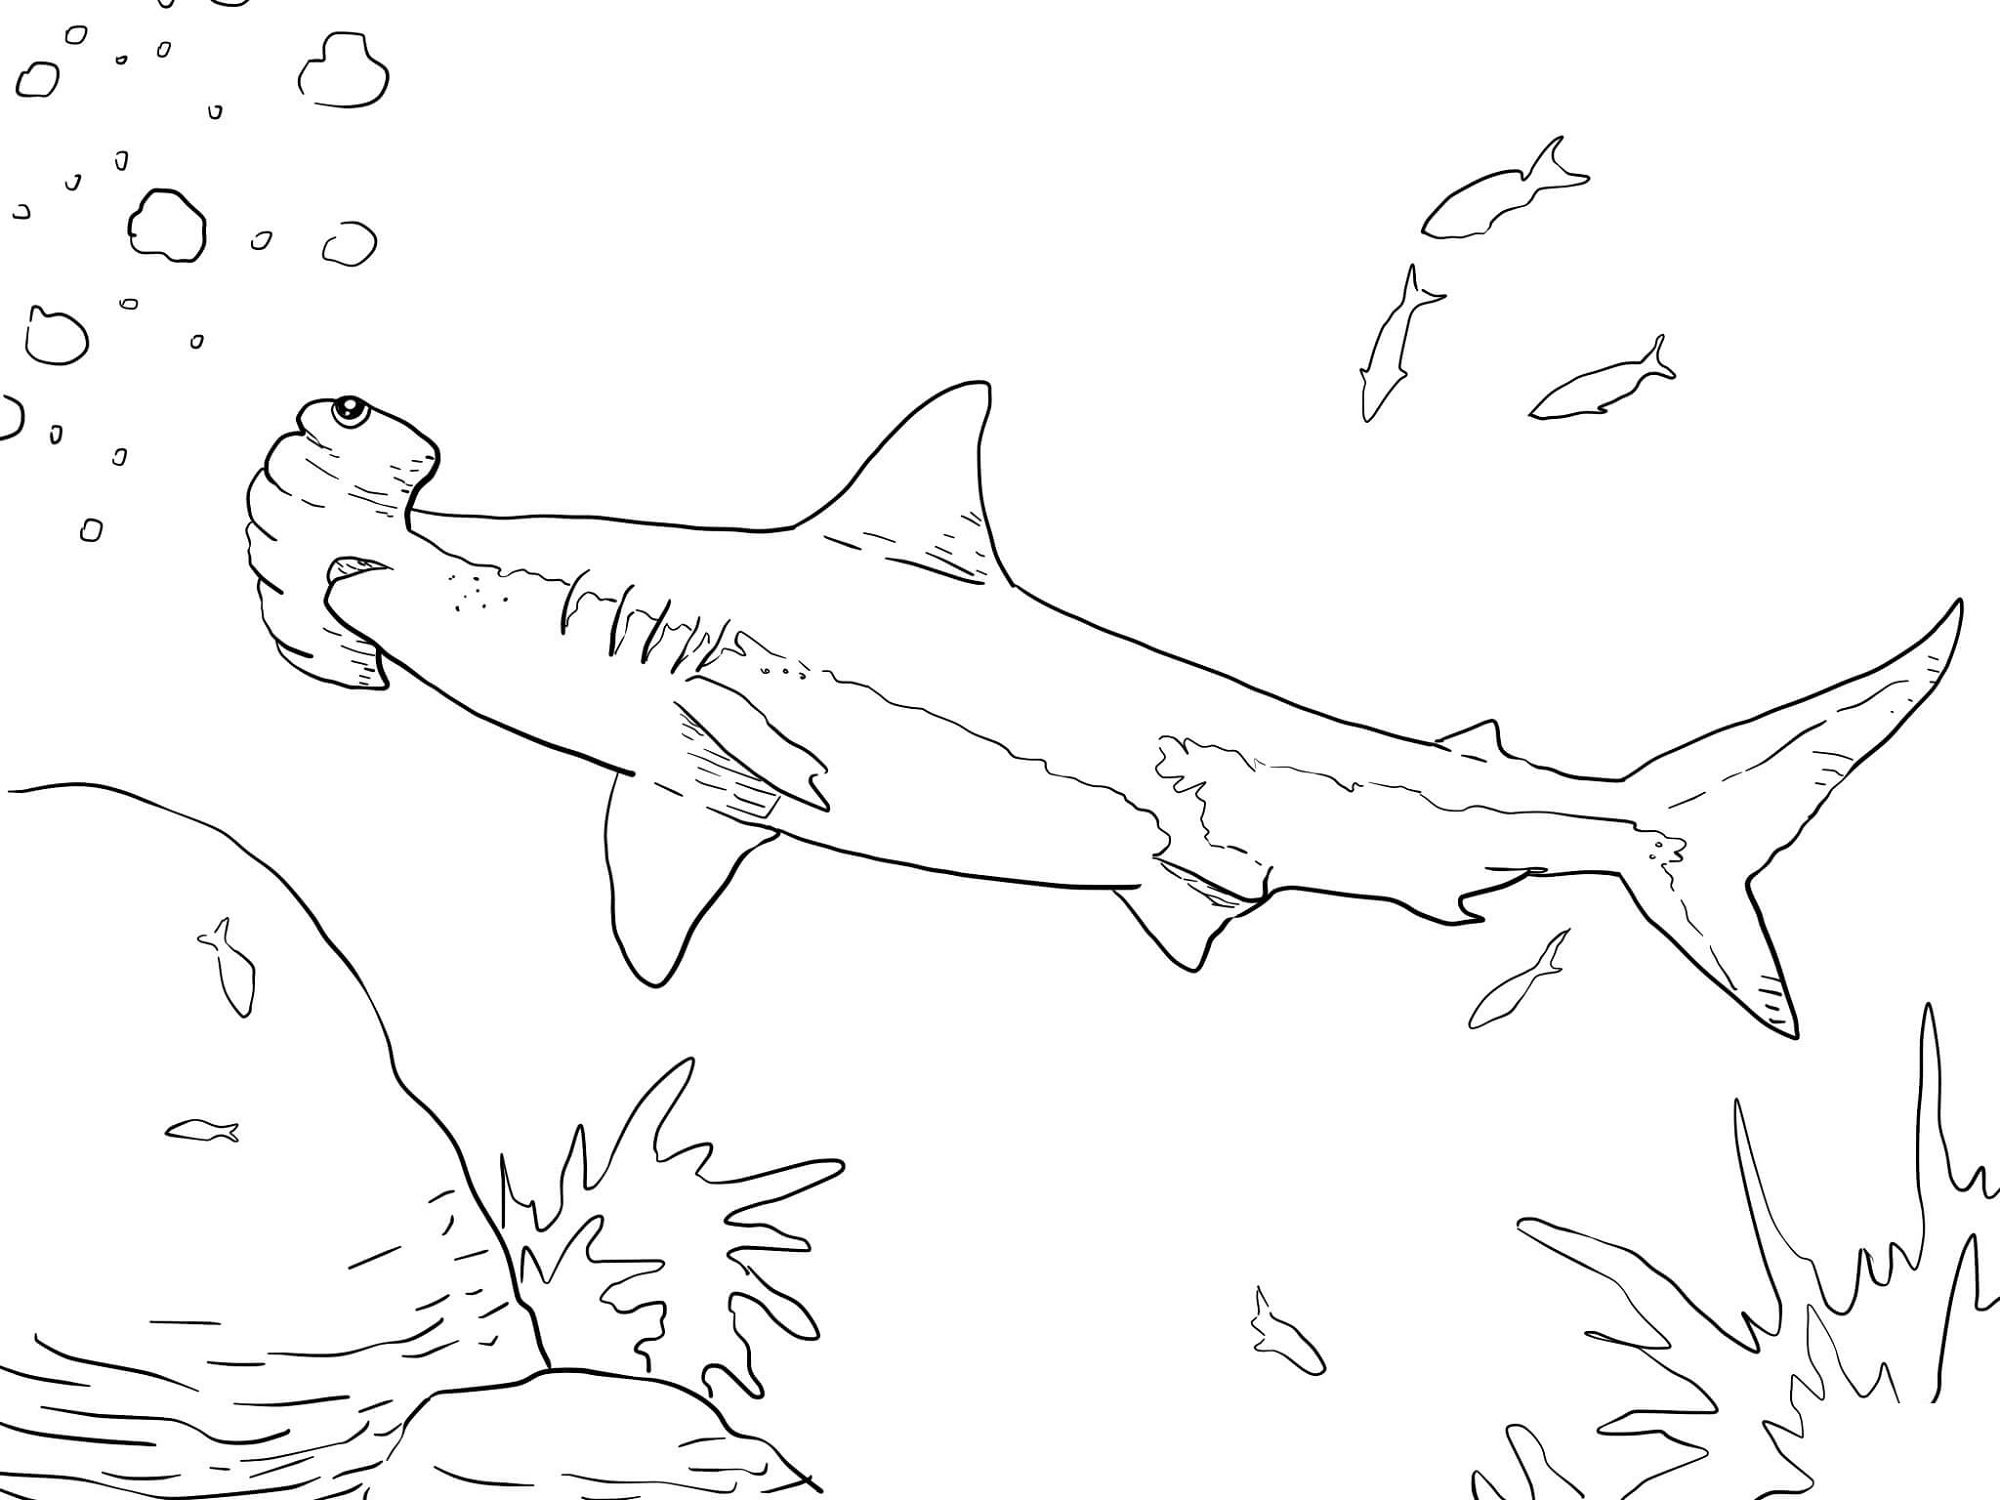 Shark Color Page For Fish Lovers Kiddo Shelter Shark Coloring Pages Coloring Pages Free Printable Coloring Pages